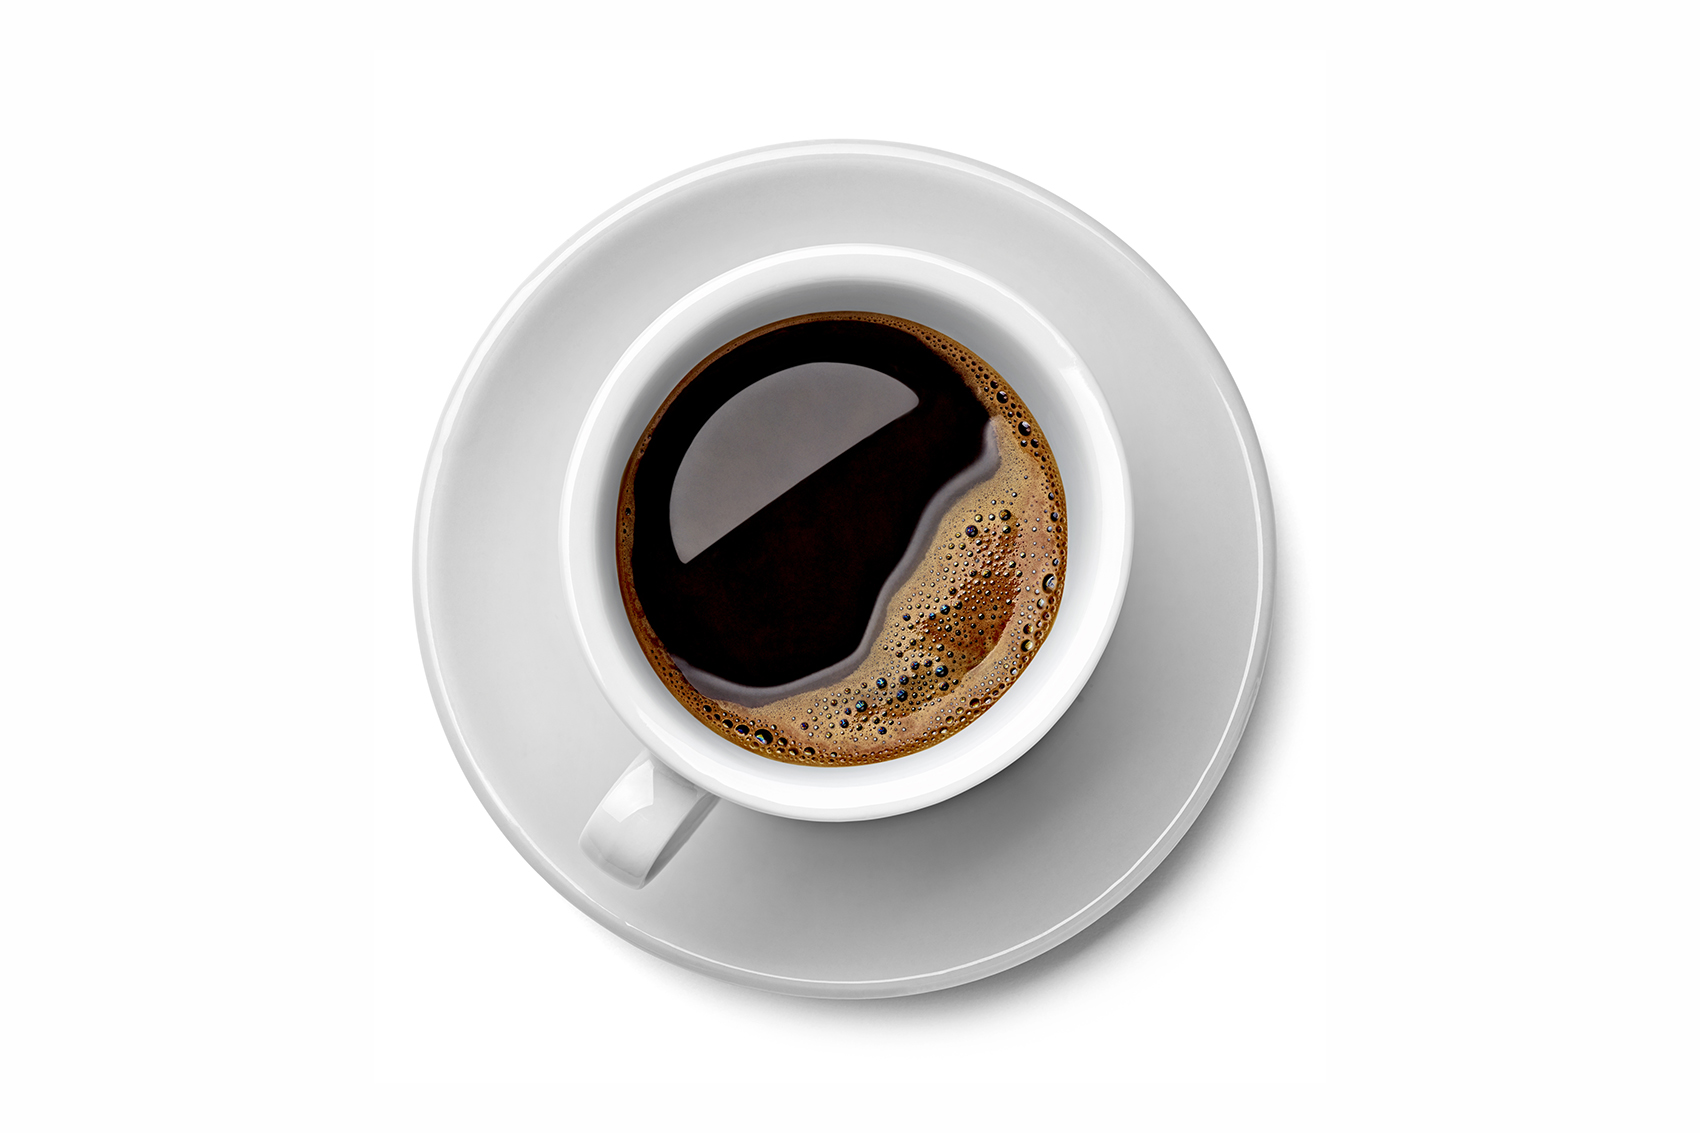 Coffee in cup on saucer